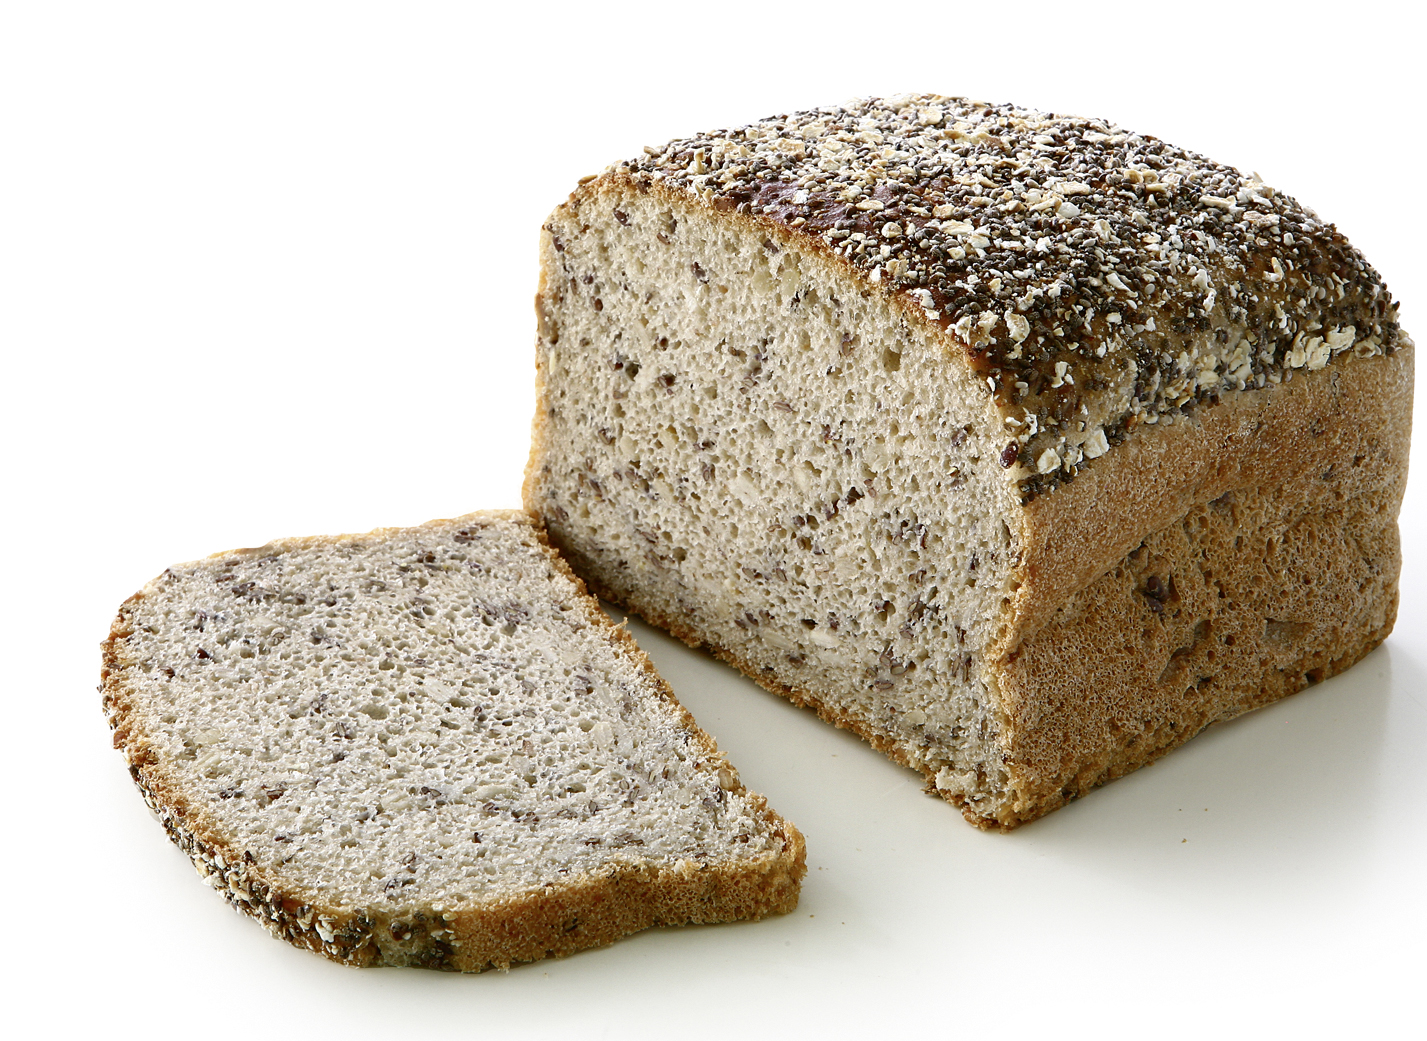 Chia Seed Bread - Quadratic multigrain bread with 8.1 % oilseeds, 4.8 % chia seeds and natrual sourdough/ measure: approx. 12.5 x 12.5 cm